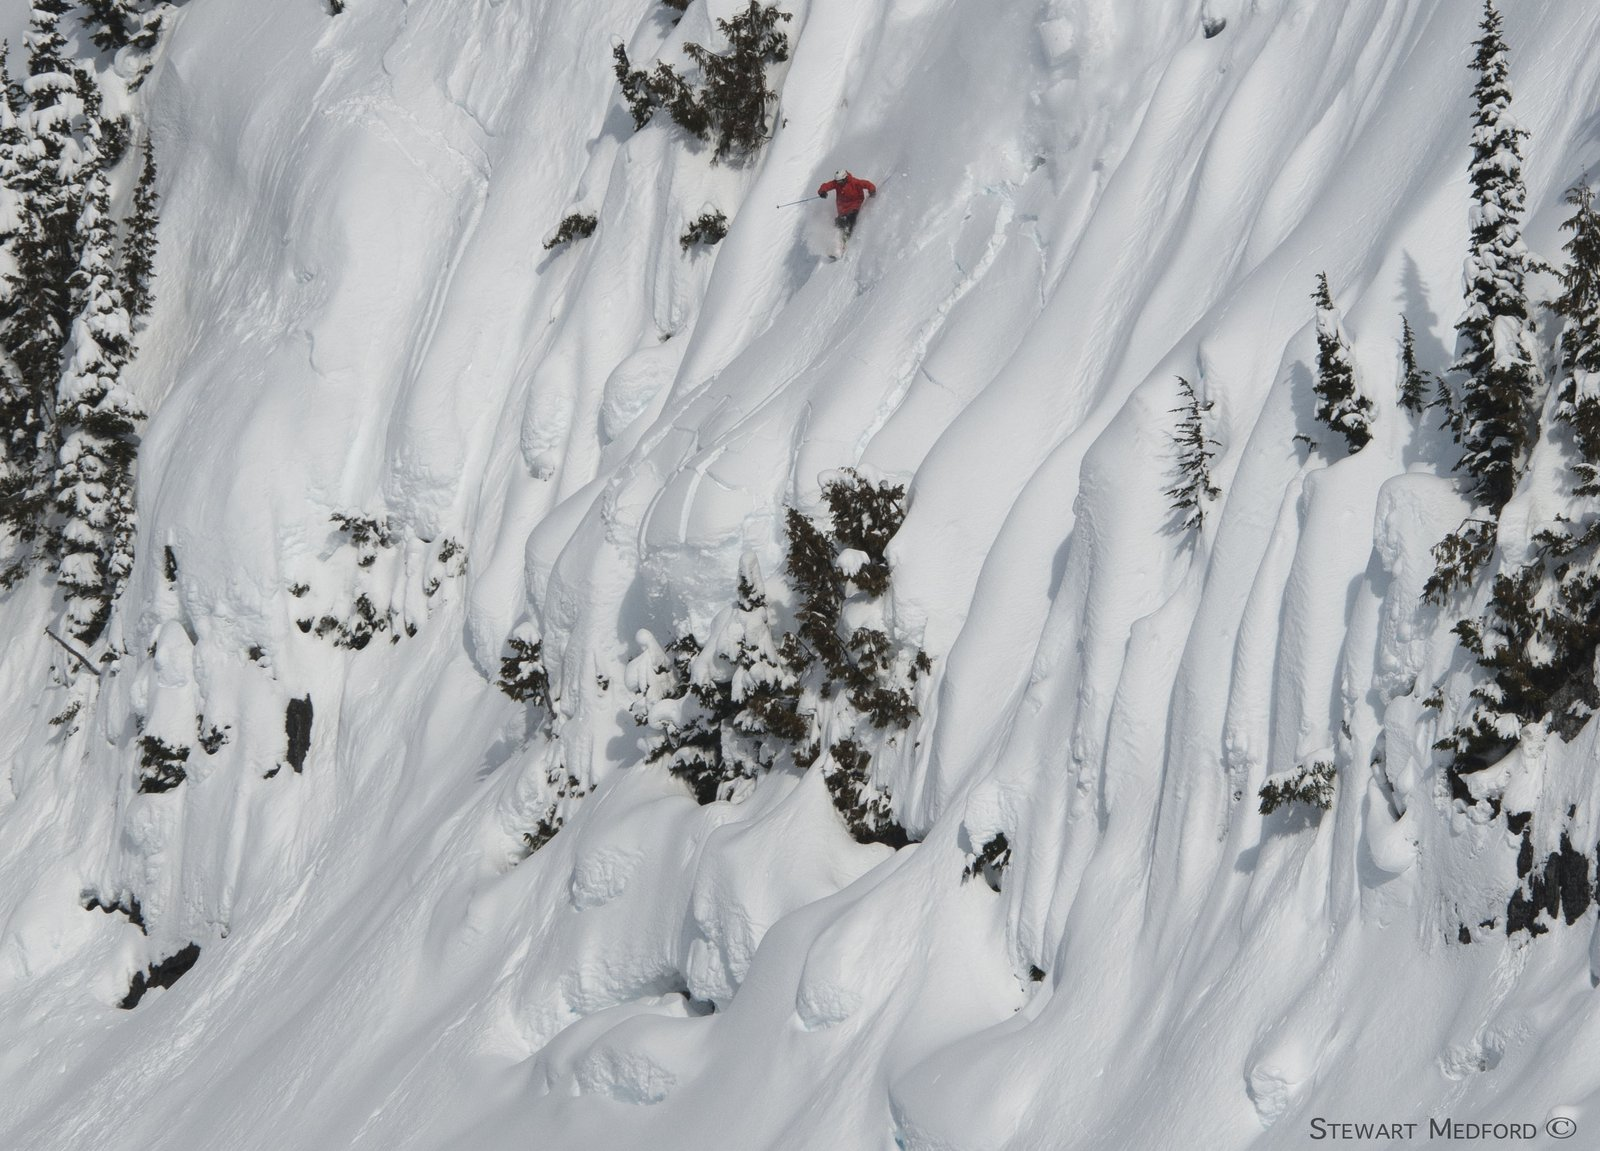 shreding mid fracture